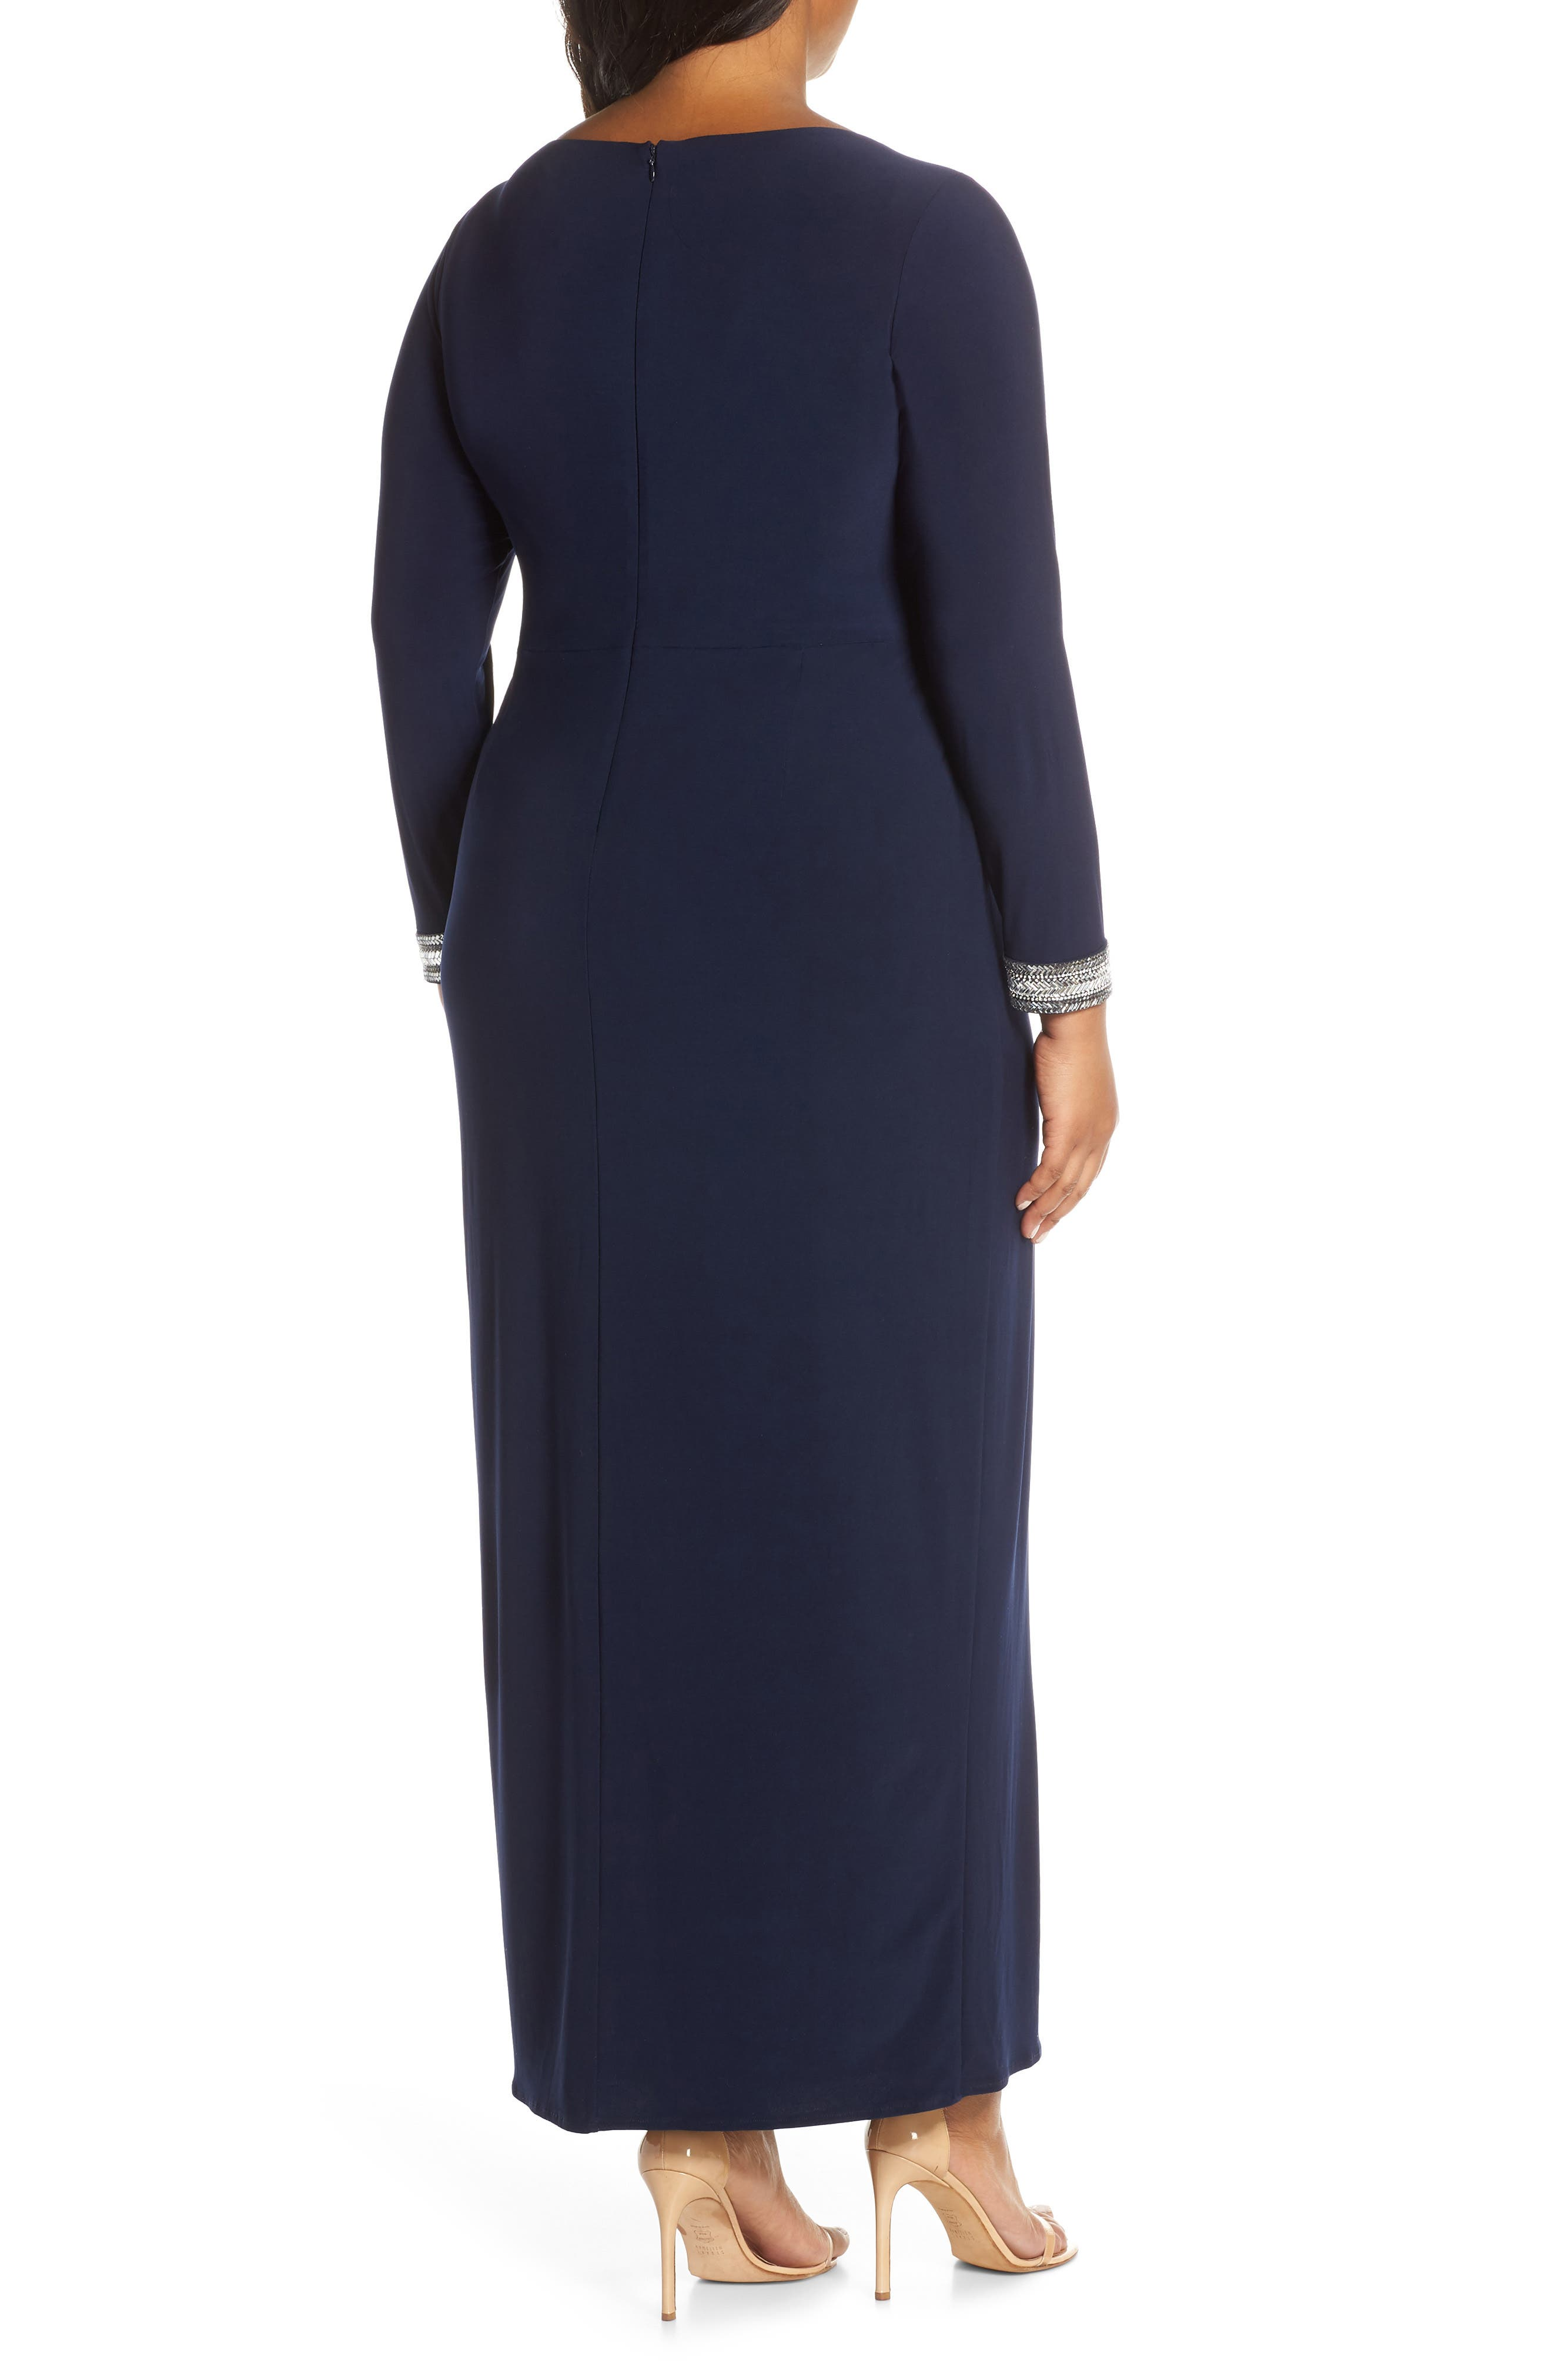 VINCE CAMUTO, Beaded Cuff Ruched Jersey Gown, Alternate thumbnail 2, color, NAVY